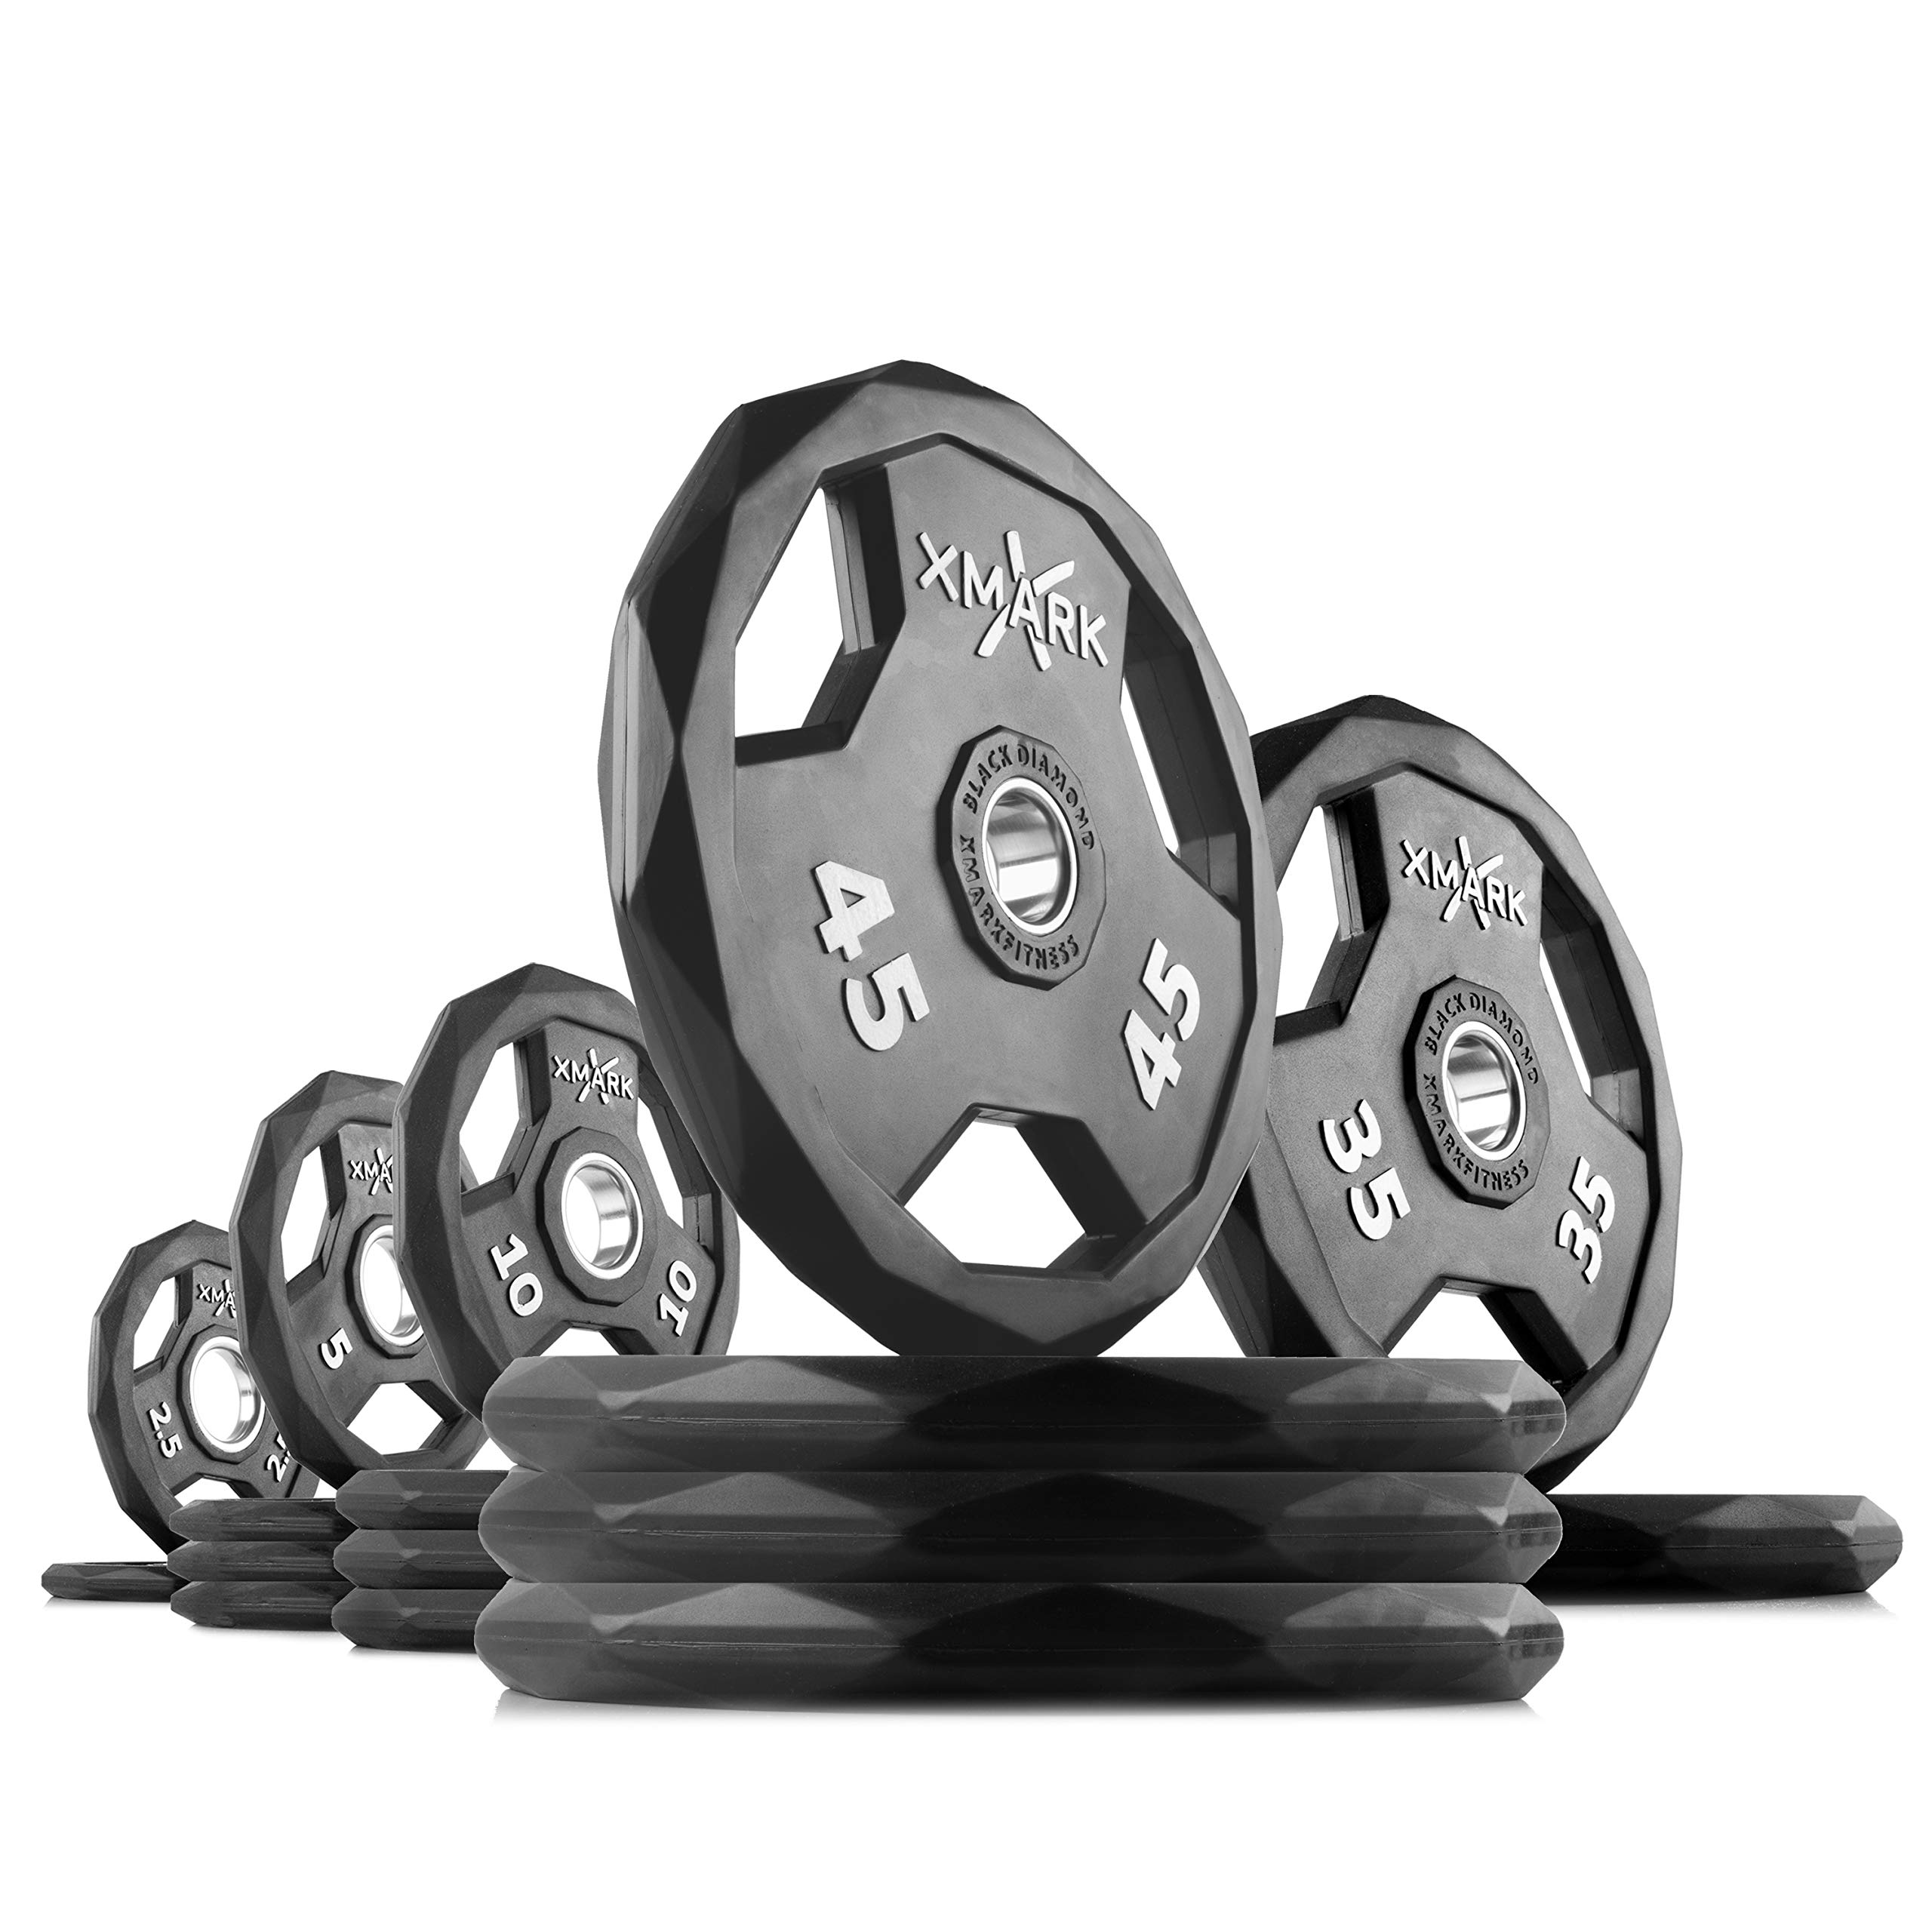 XMark Black Diamond 315 lb Set Olympic Weight Plates, One-Year Warranty, Patented Design